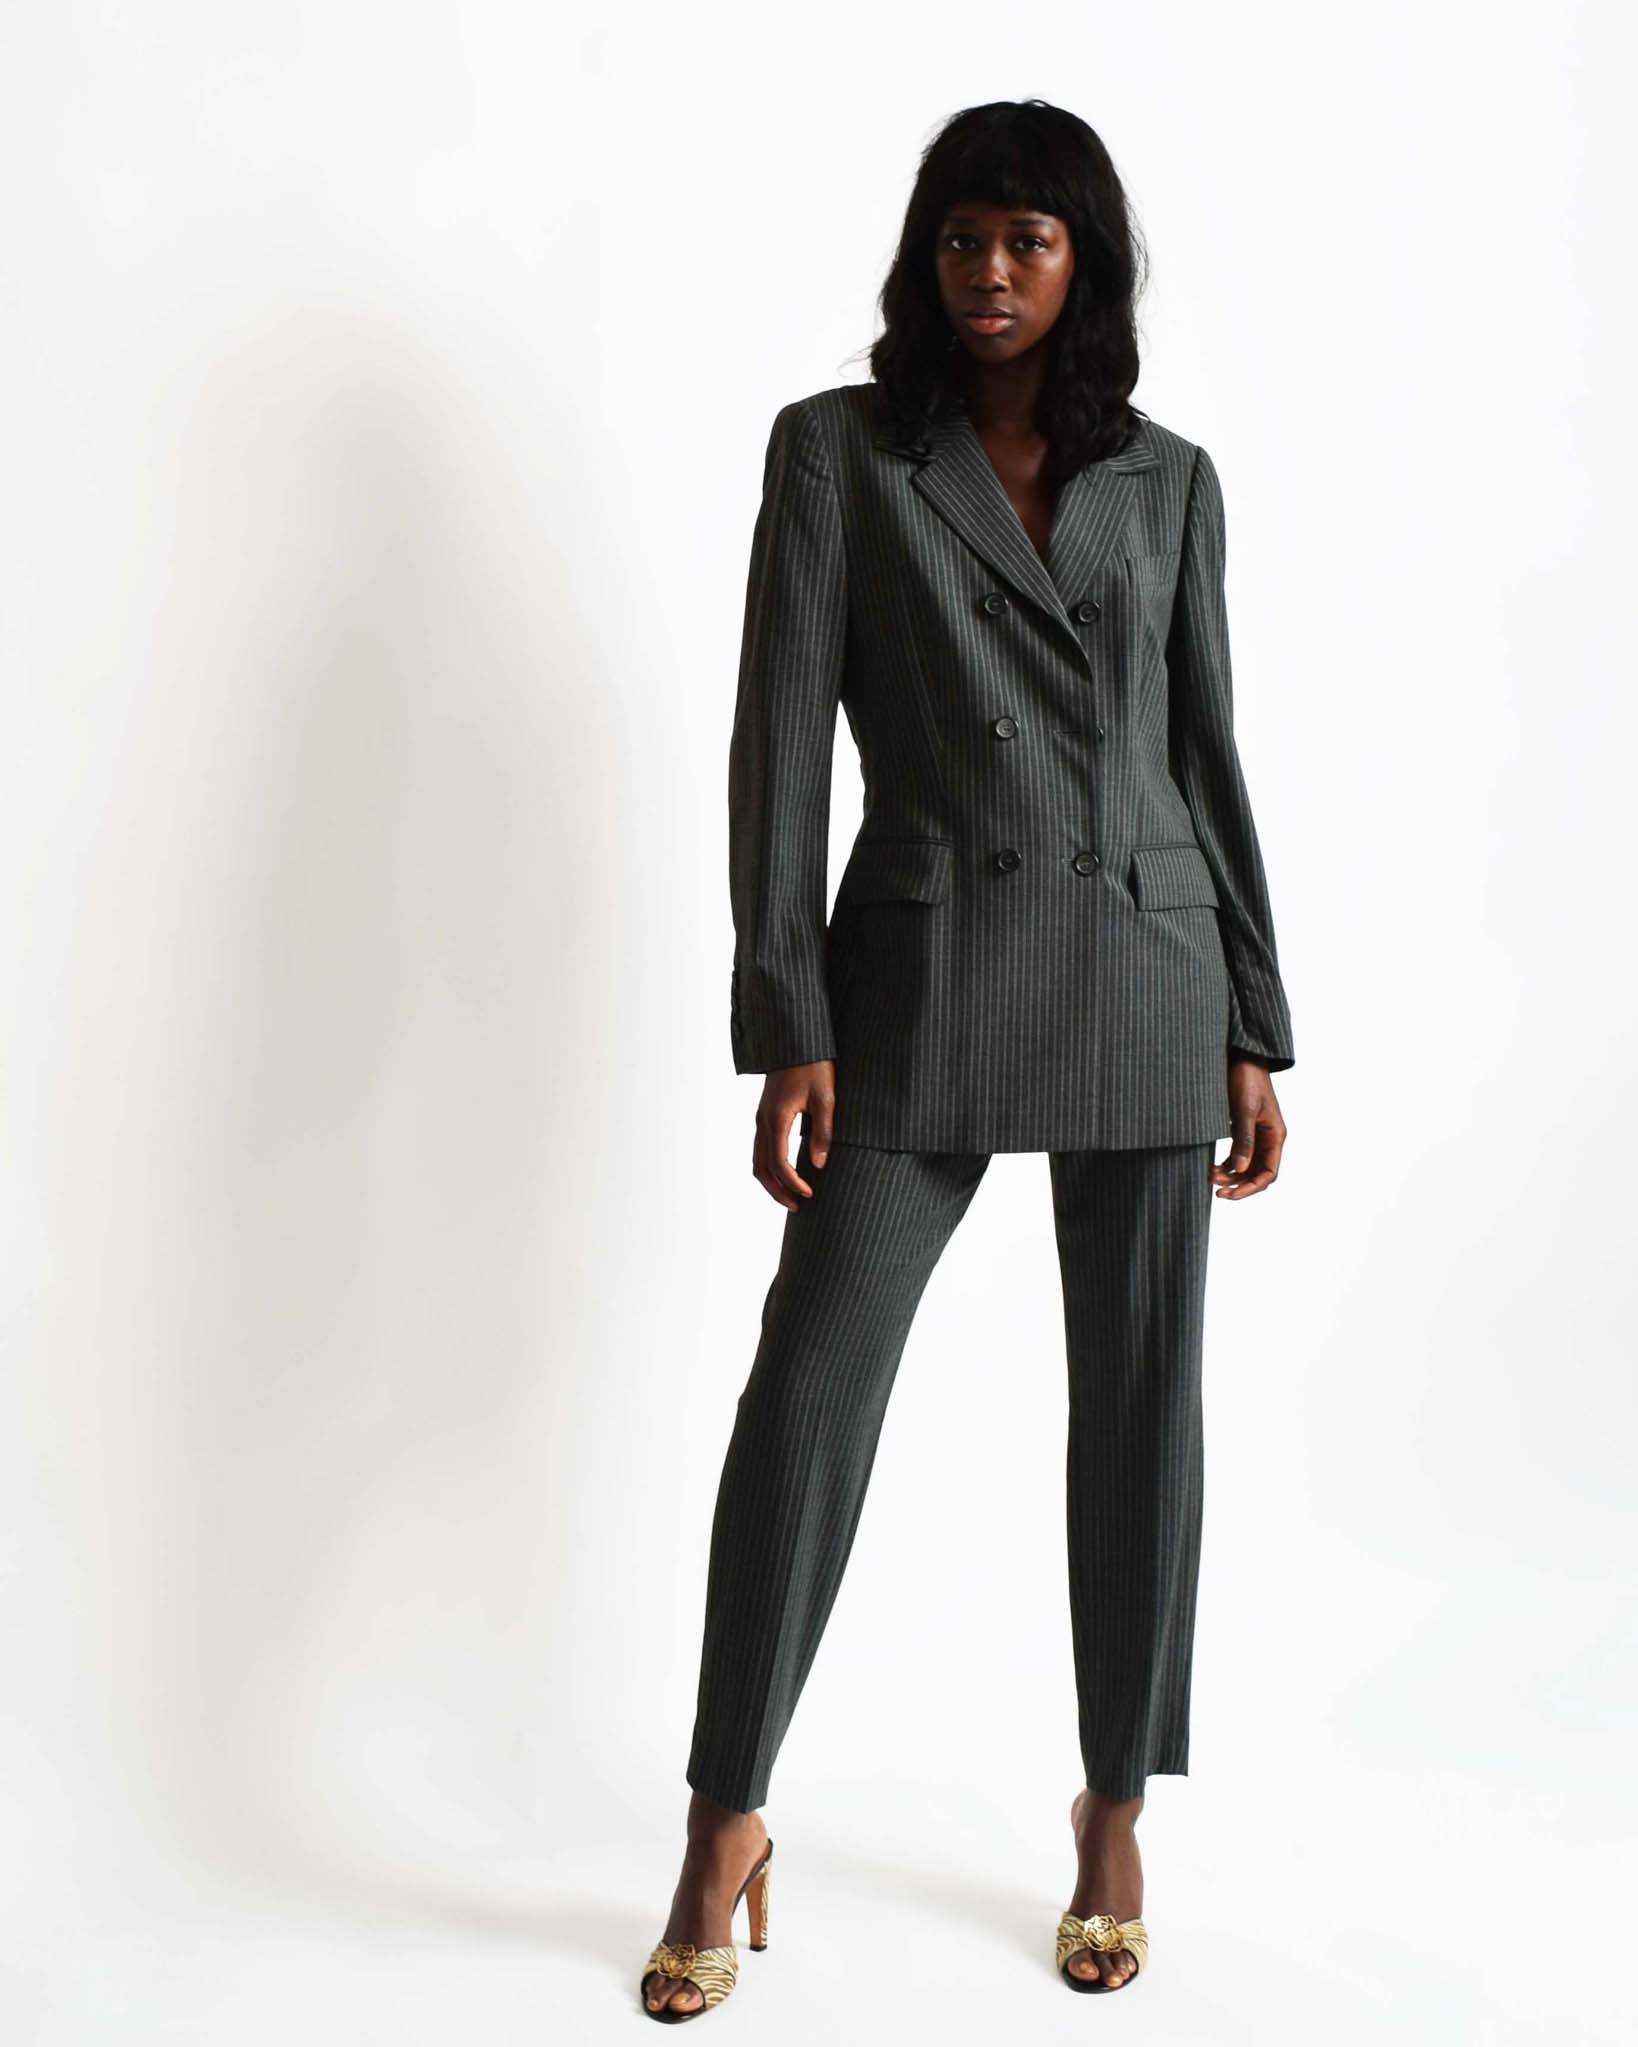 Vintage Escada Pinstriped Suit